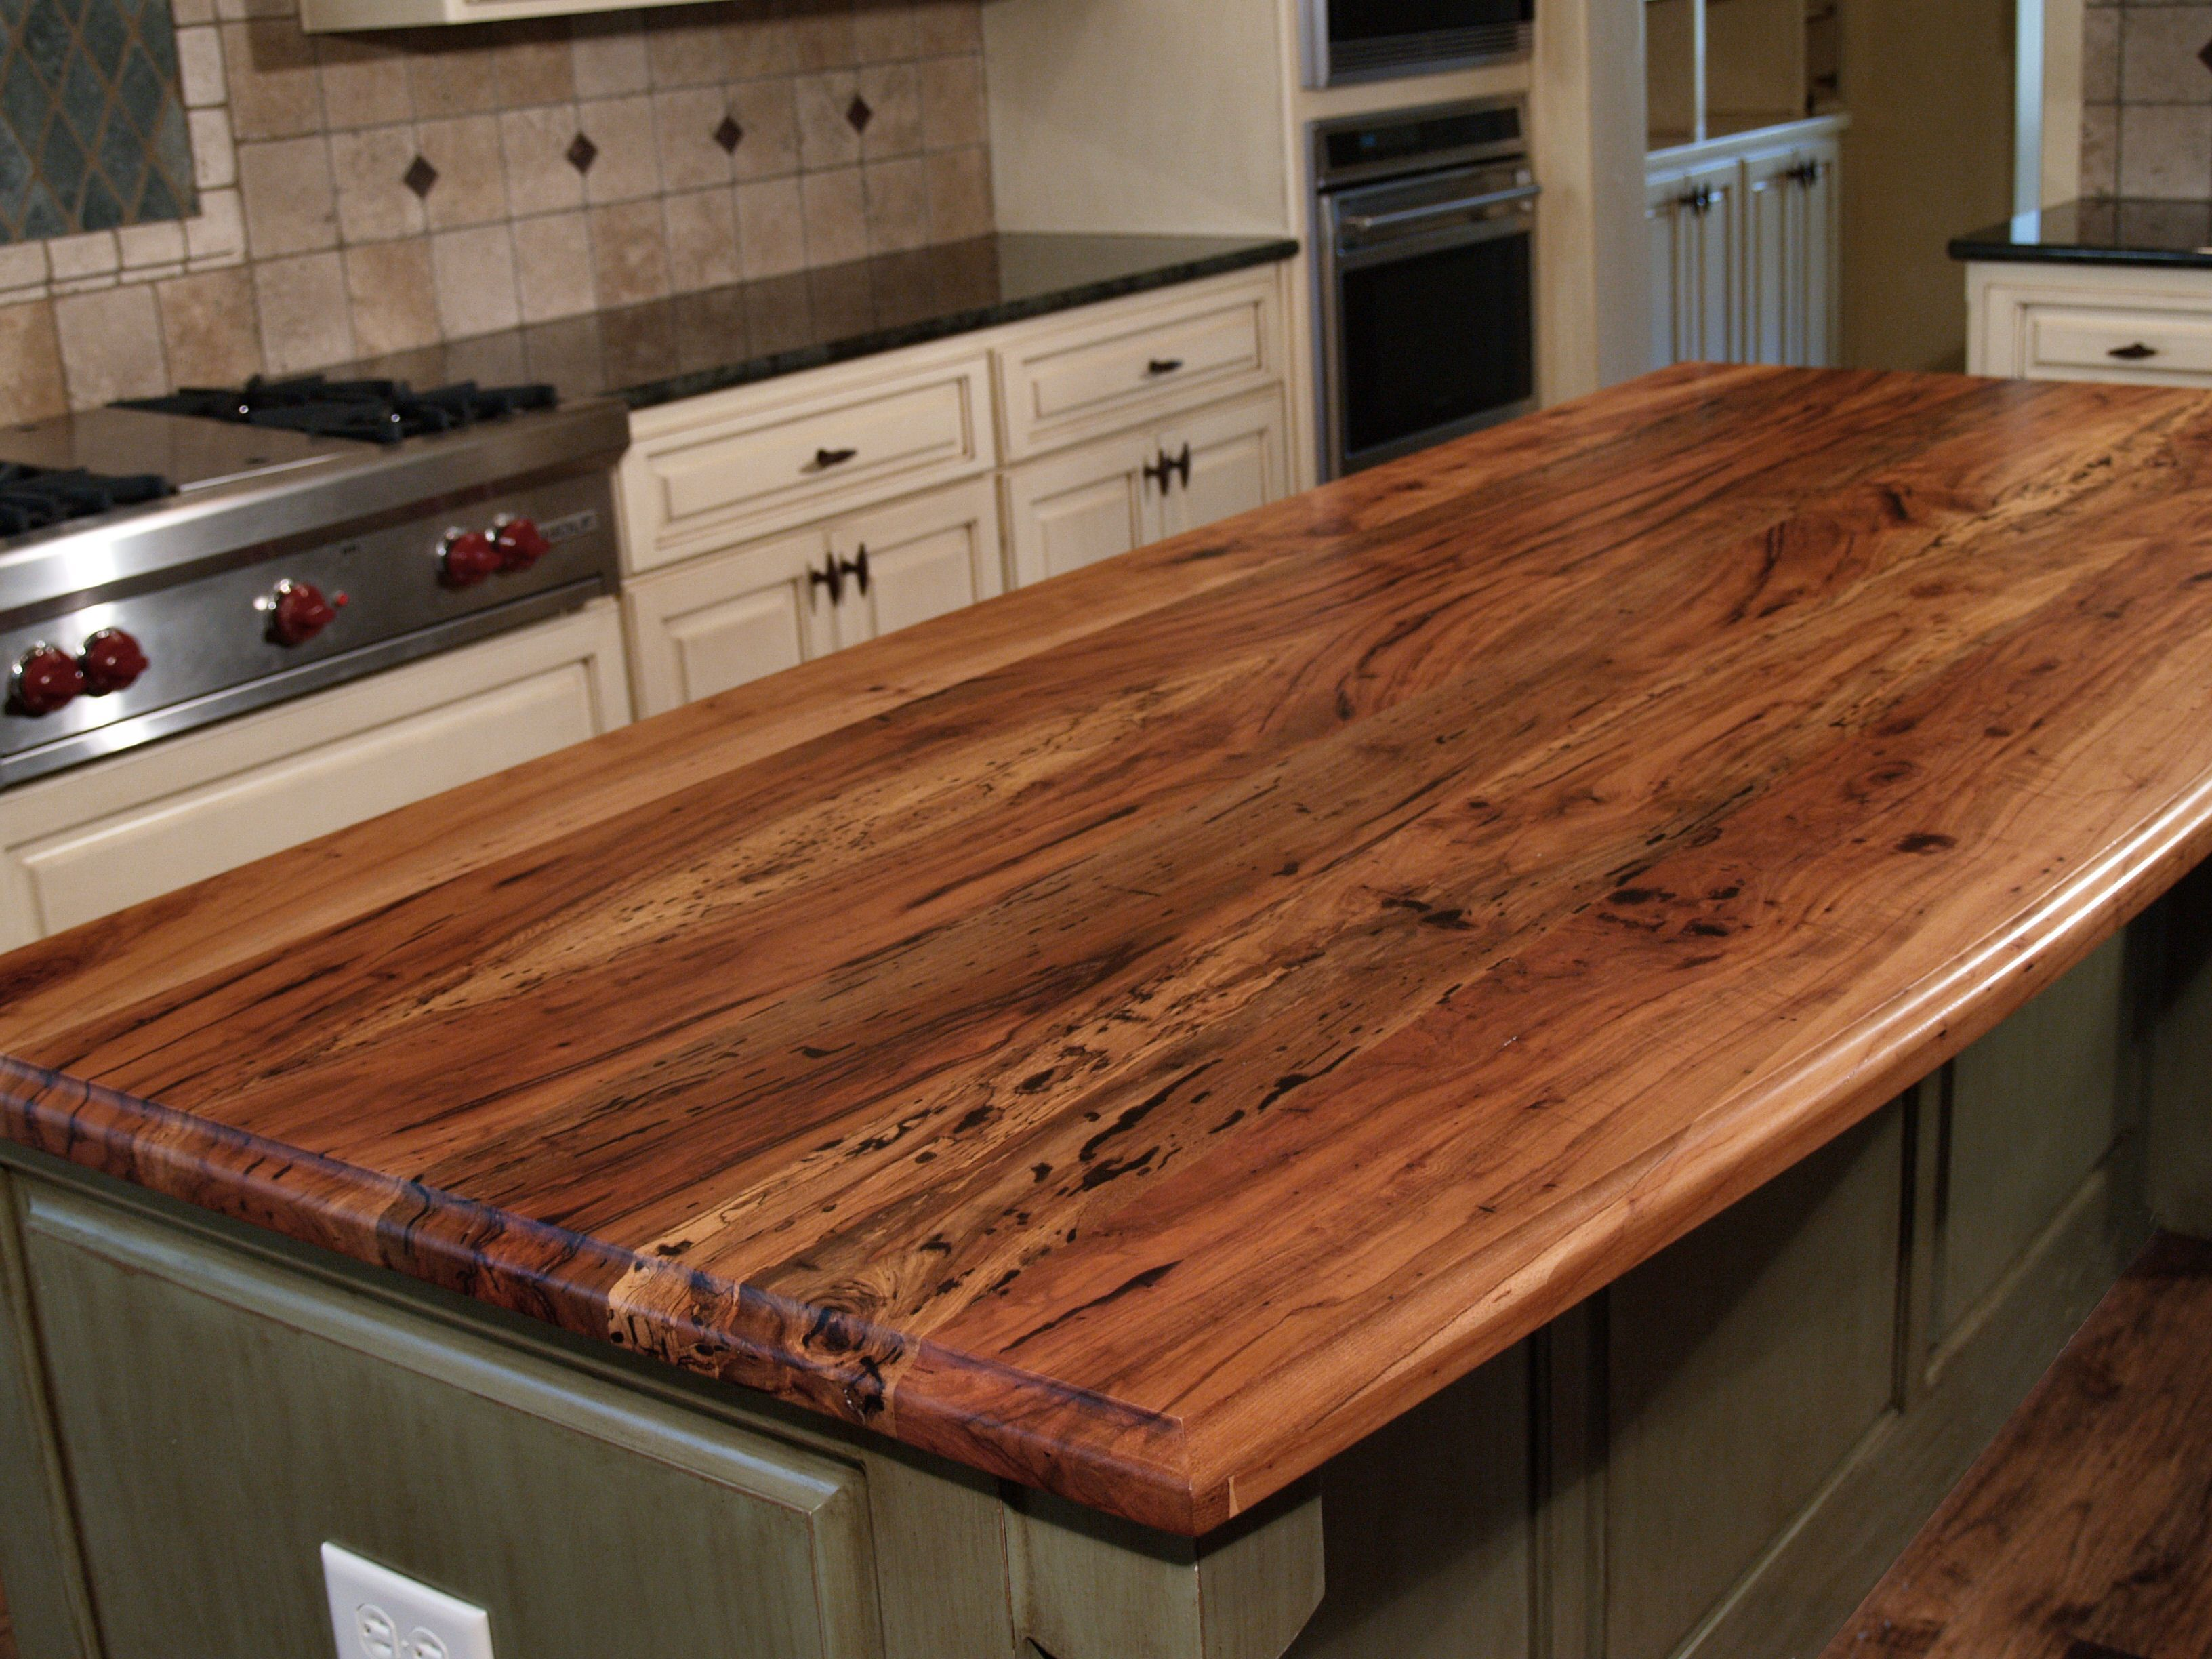 Wood countertop wood countertops • wood island tops • butcher block countertops